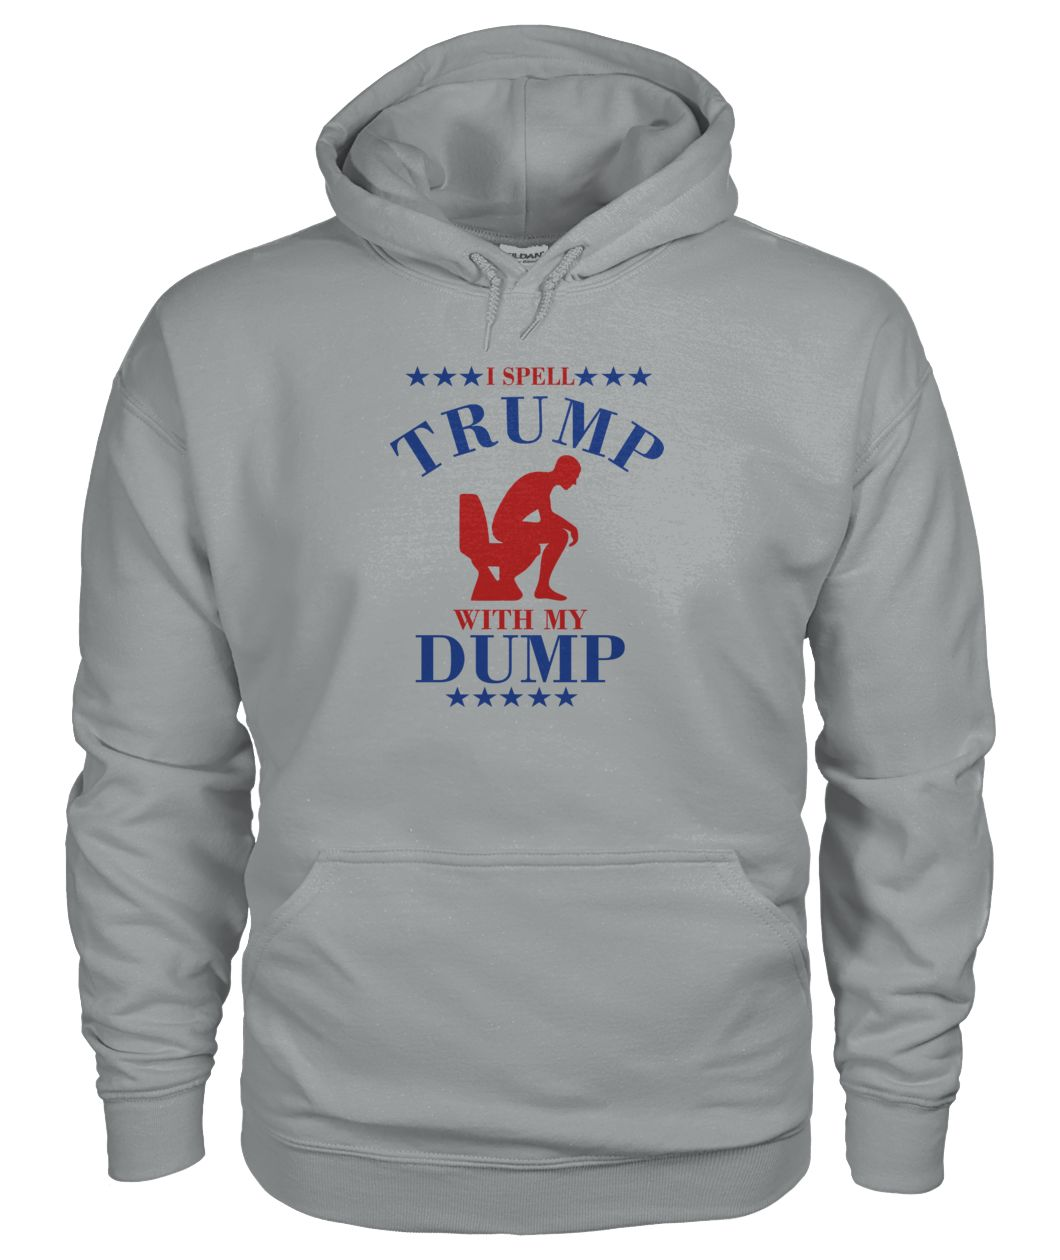 I Spell Trump With My Dump Hoodie